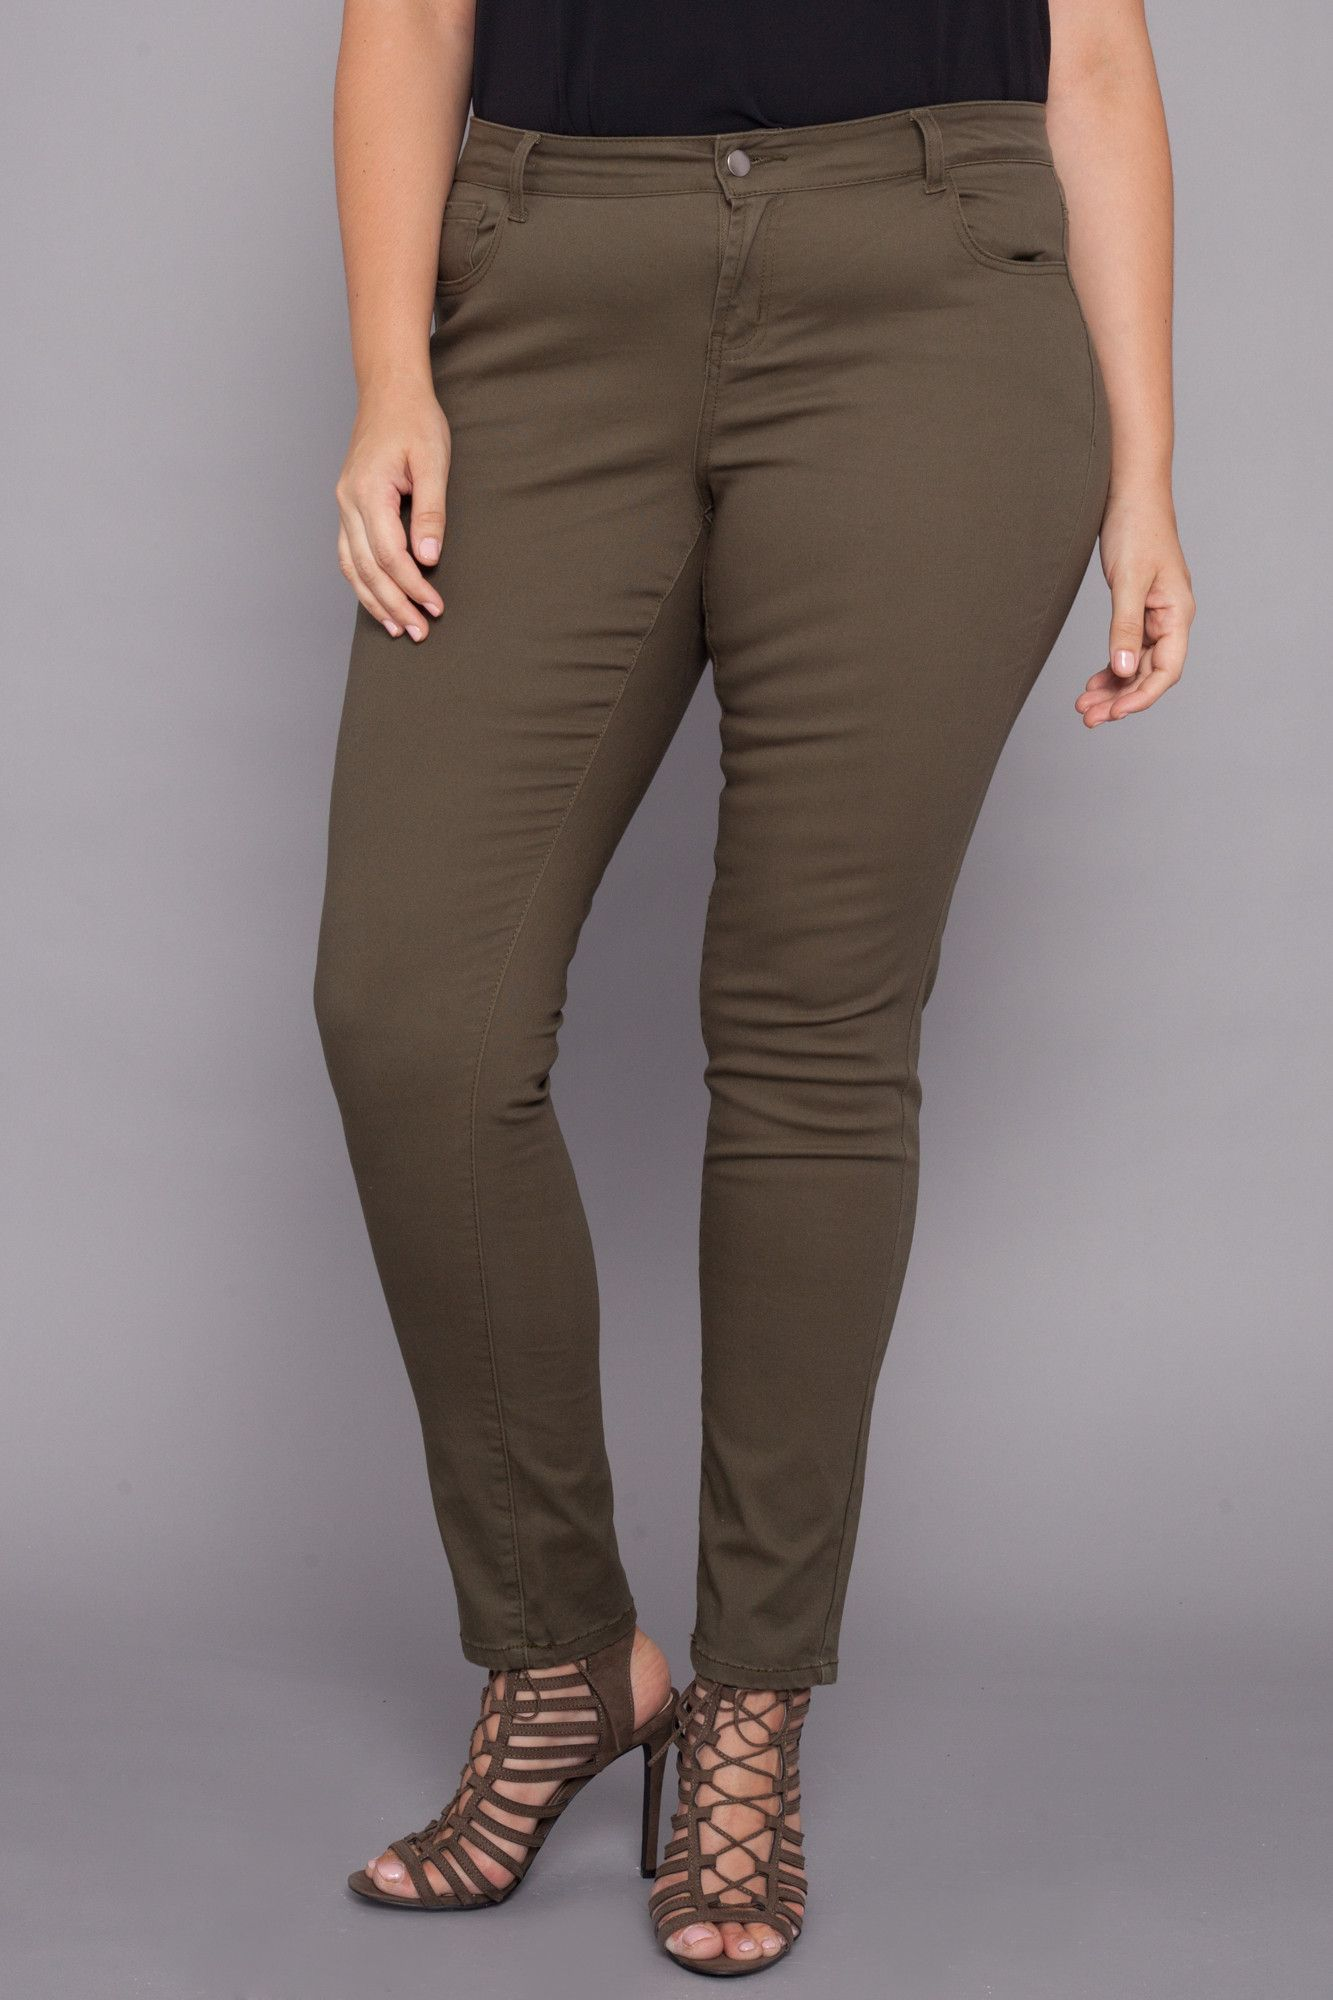 Plus Size Super Skinny Jeans - Olive | Olives, Products and Skinny ...